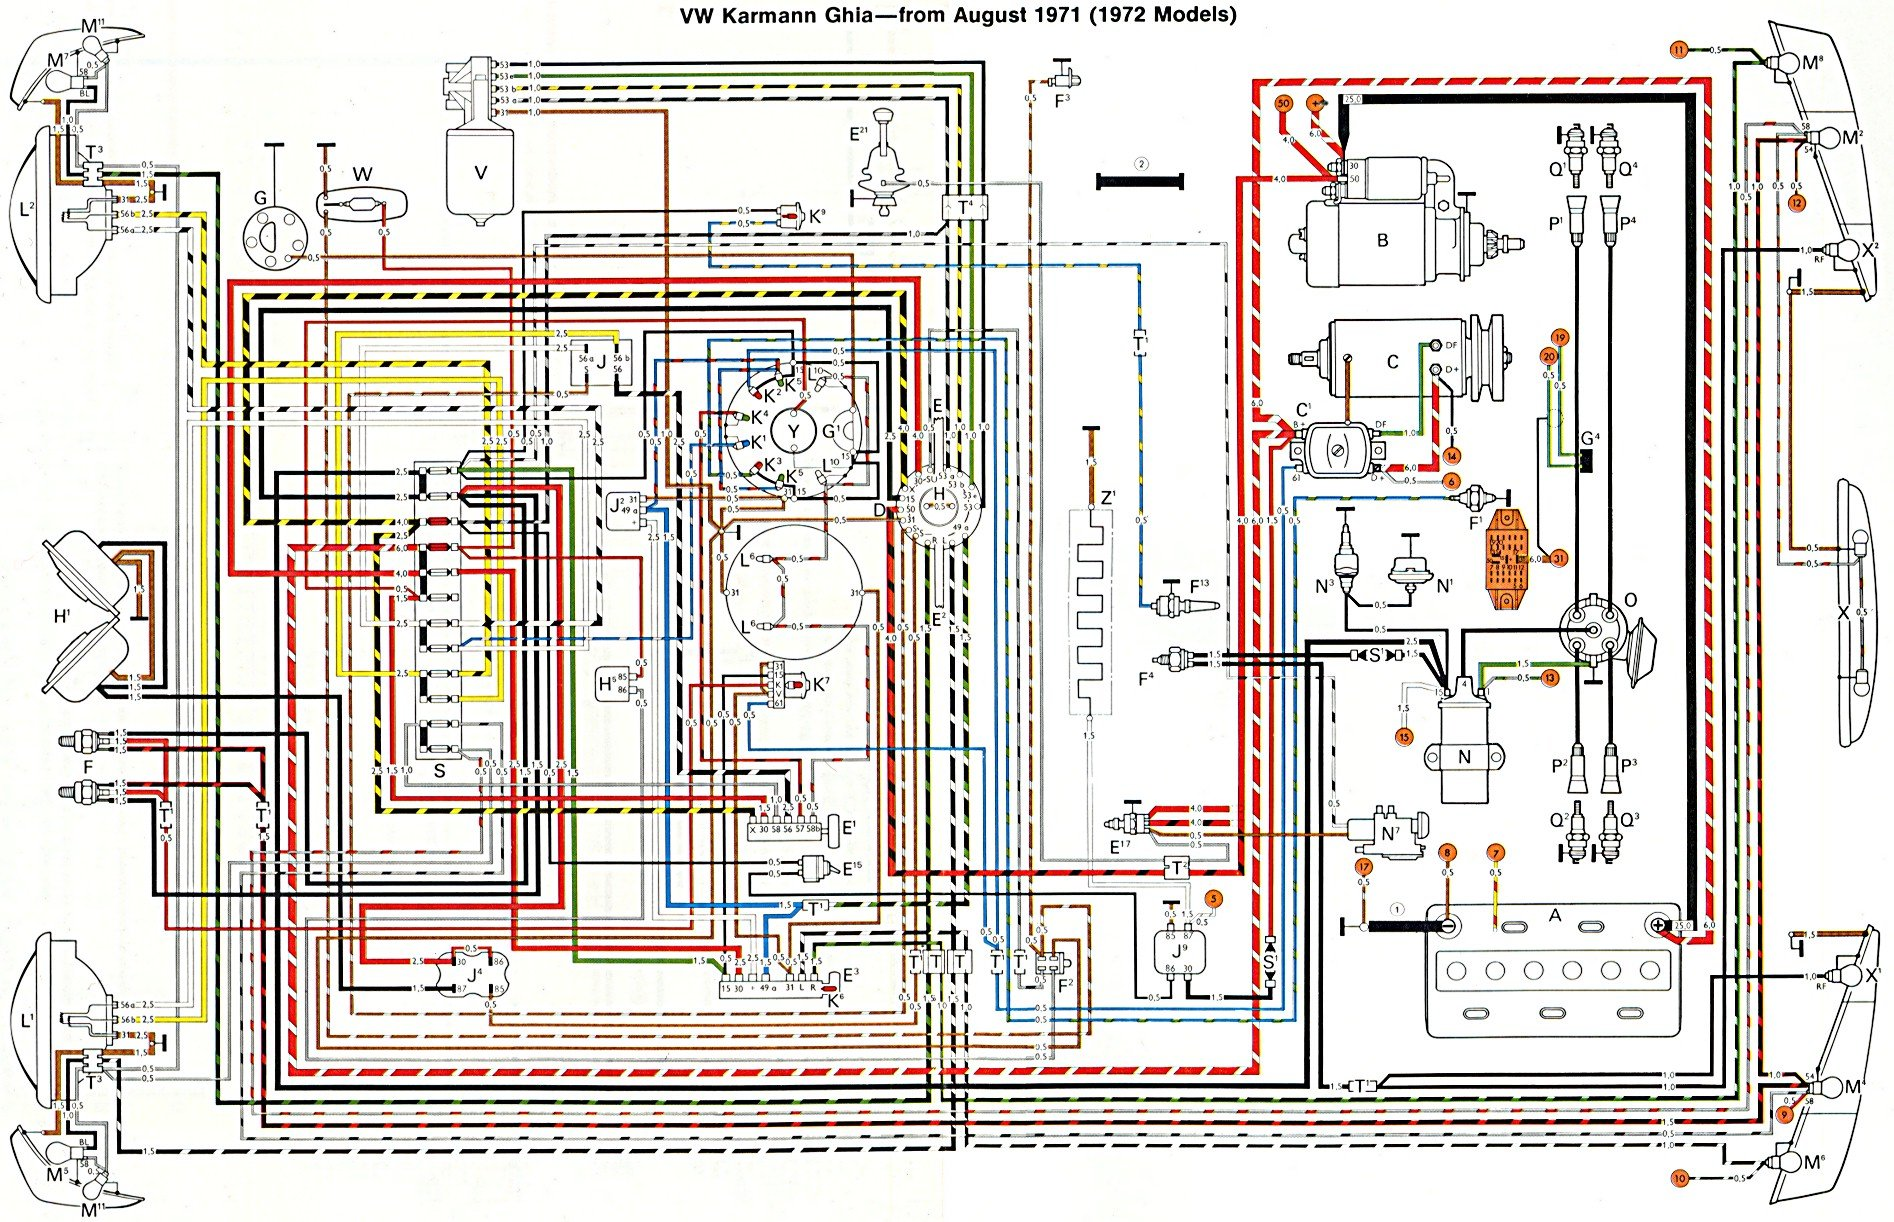 72ghia vw type 3 wiring diagram vw wiring diagrams free downloads \u2022 free vw type 3 wiring harness at virtualis.co